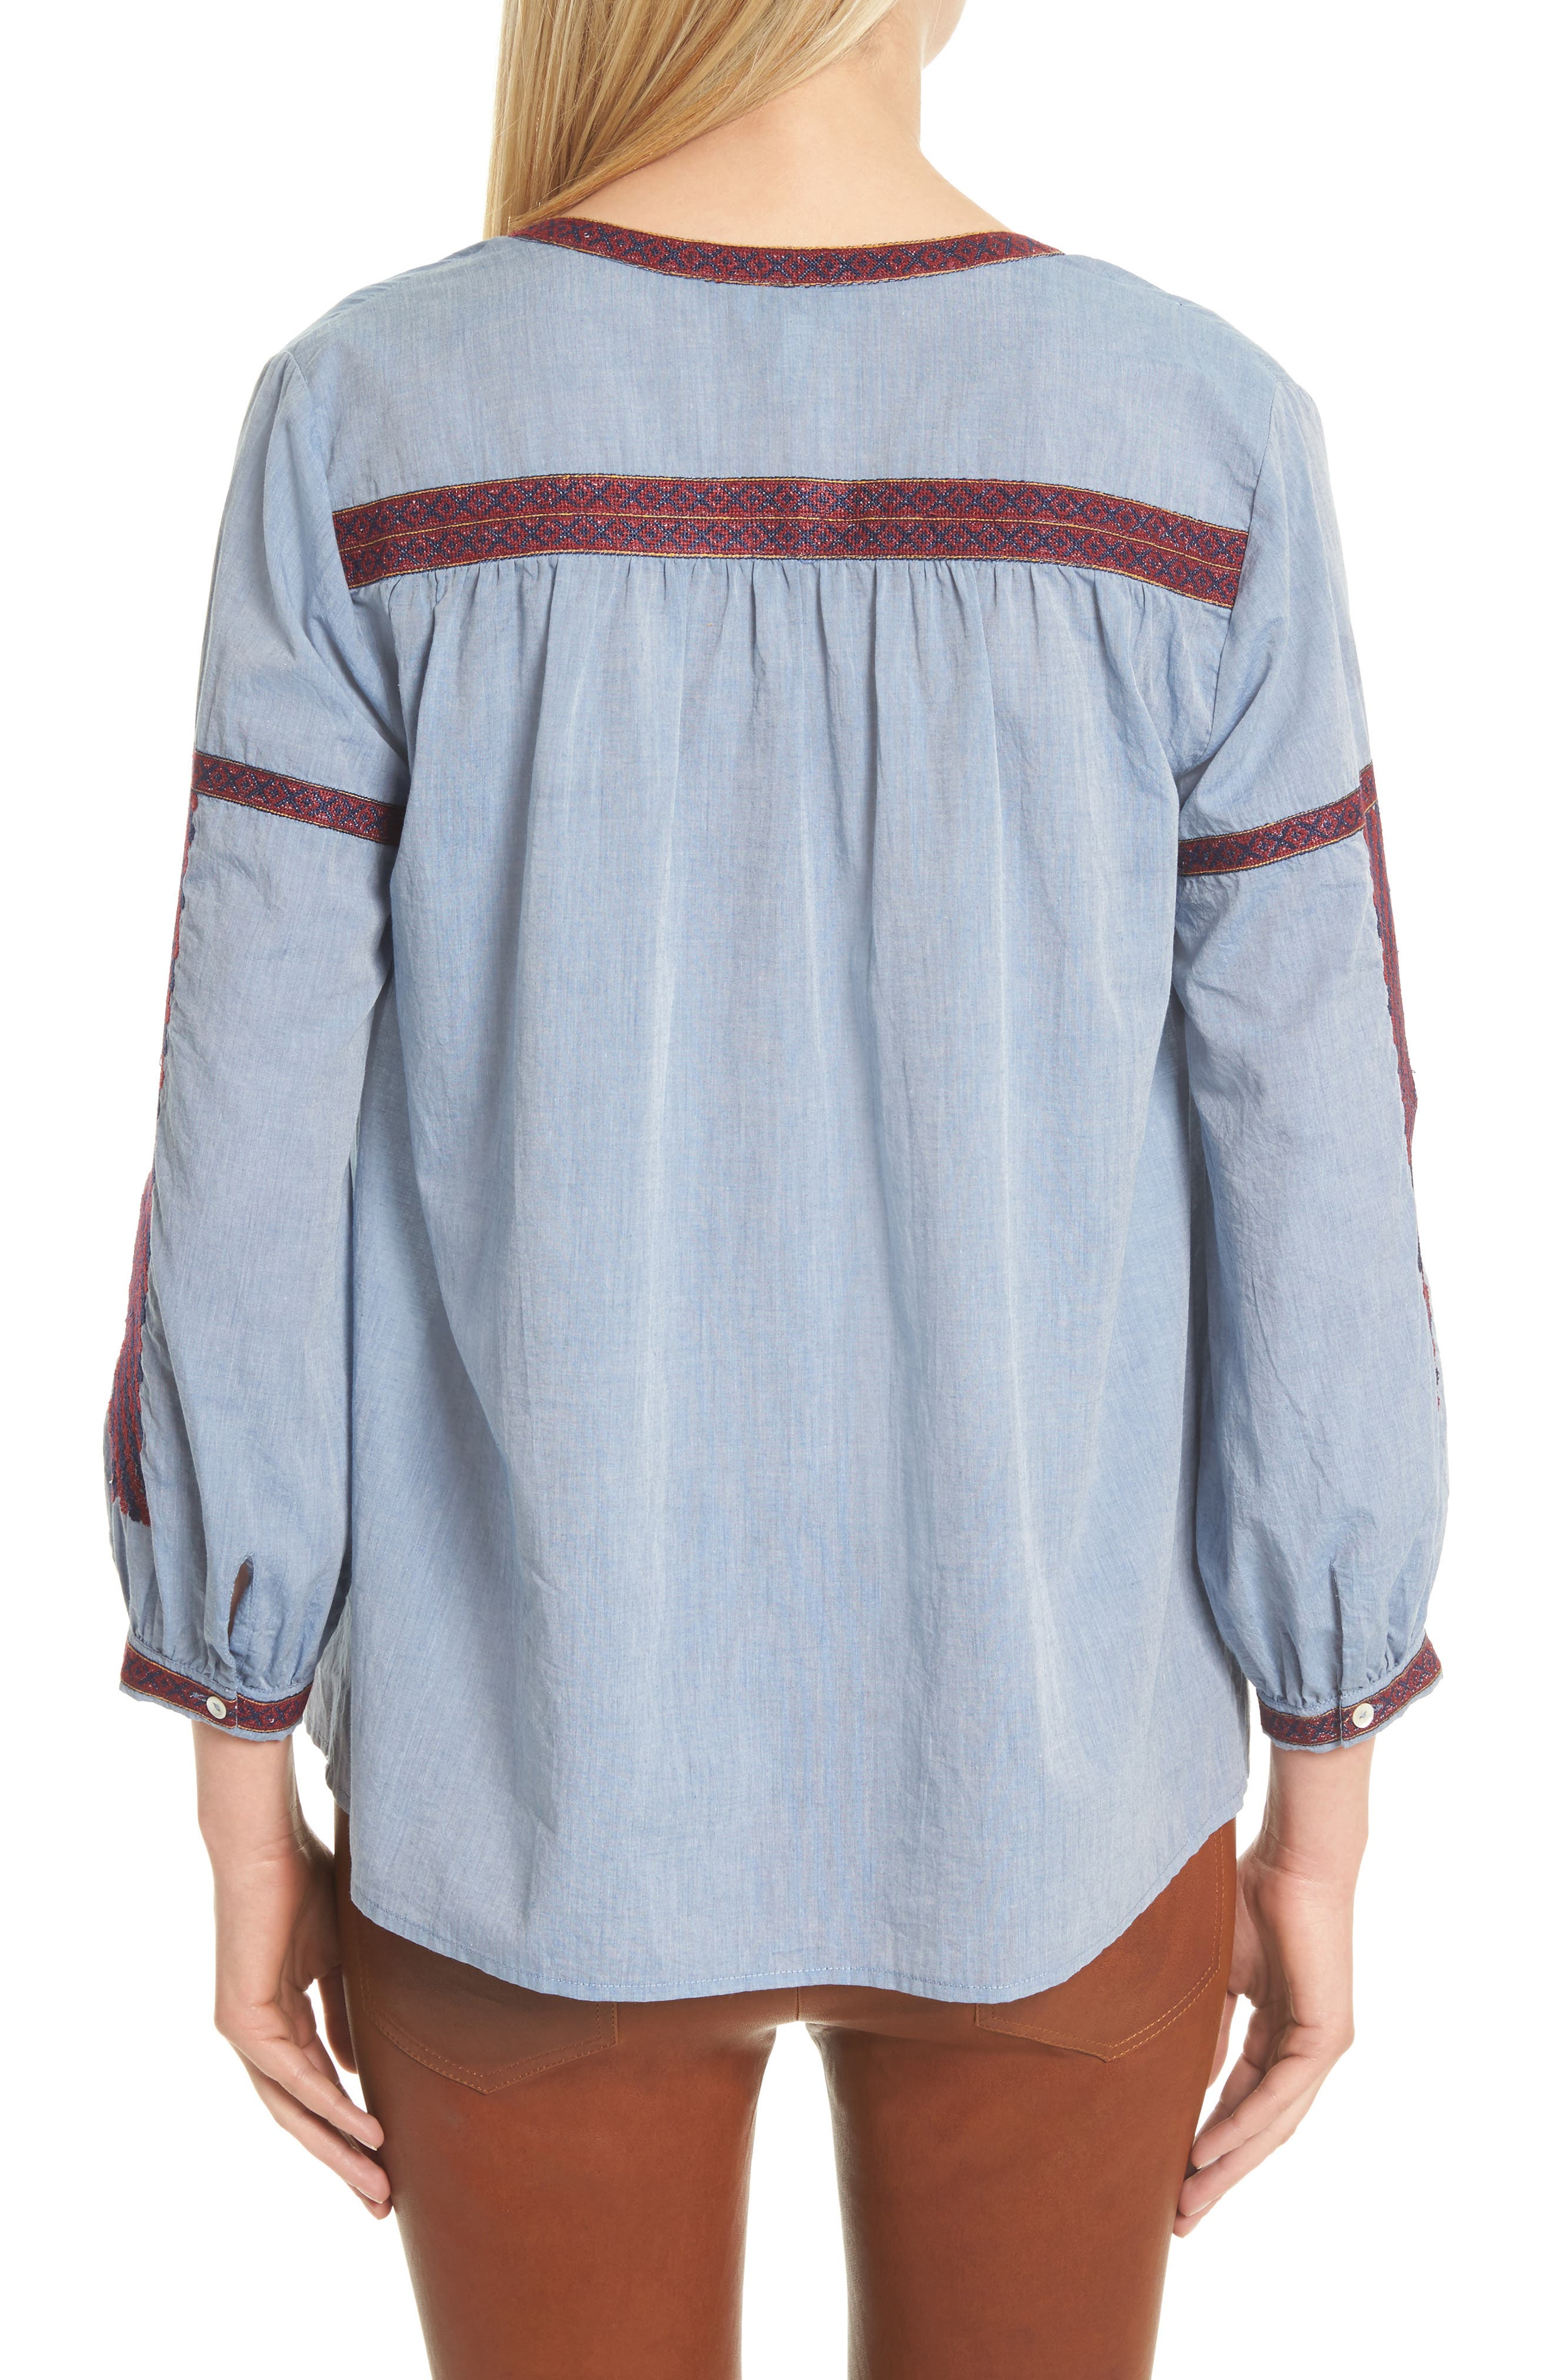 Marlen Embroidered Chambray Top,                             Alternate thumbnail 2, color,                             470